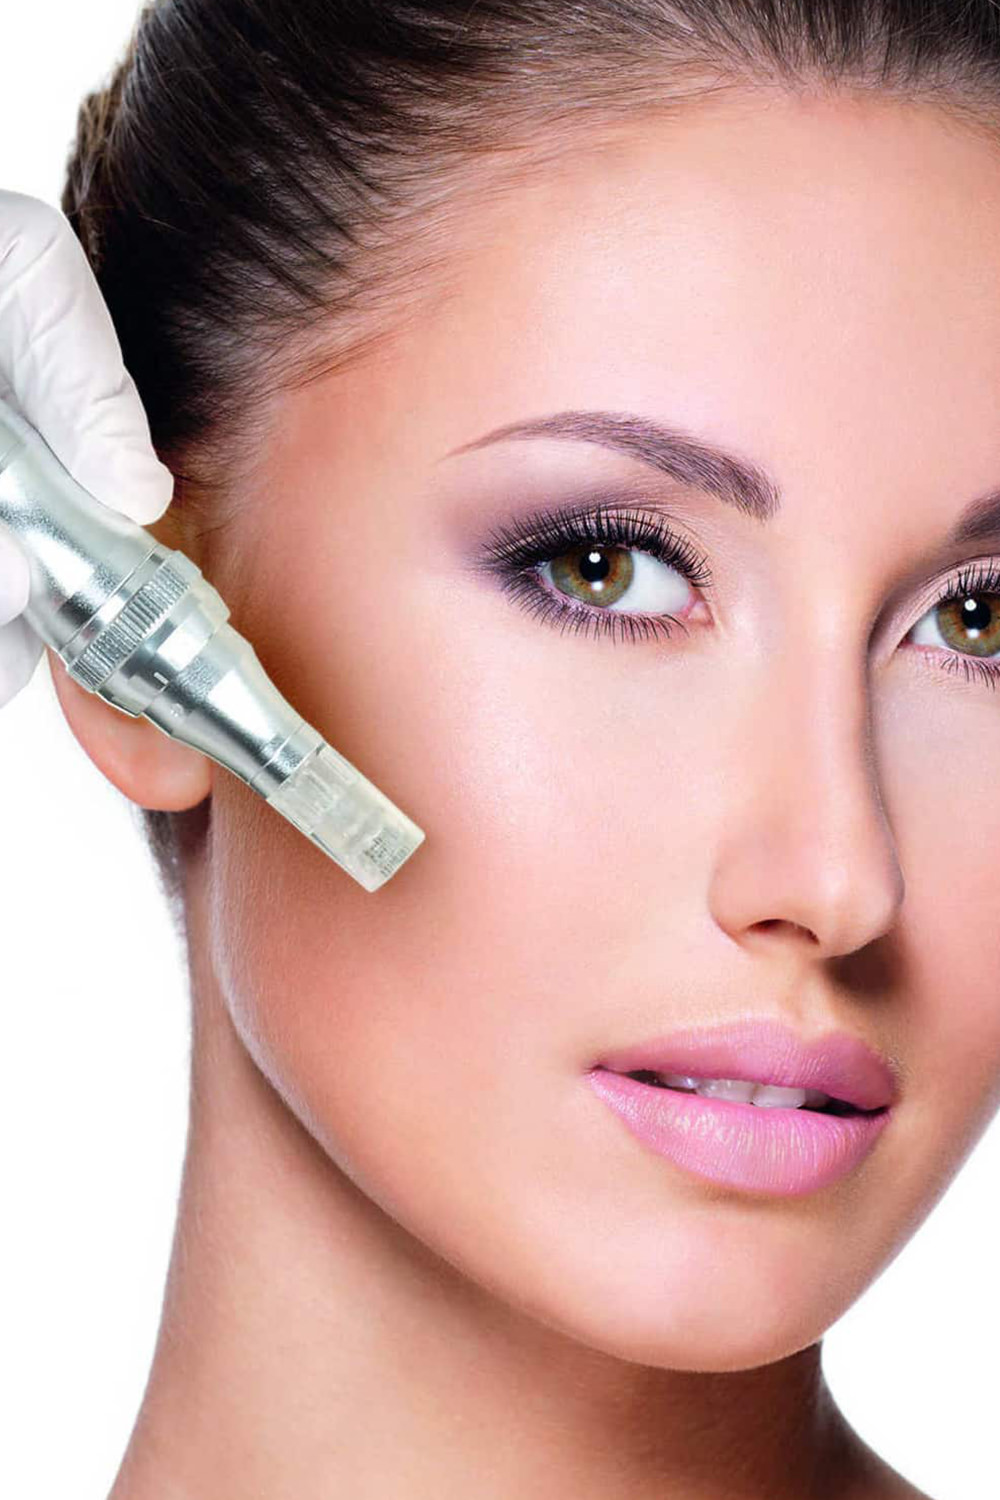 Microneedling - $249 each or $625/pkg 3Collagen induction therapy, also known as microneedling, addresses fine lines, wrinkles, large pores, and uneven skin texture at the cellular level. Accommodating all skin types, microneedling comfortably creates thousands of micro-injuries in the skin, triggering the body's natural wound healing process. The outcome is skin remodeling- beautiful, youthful looking skin with little to no downtime.